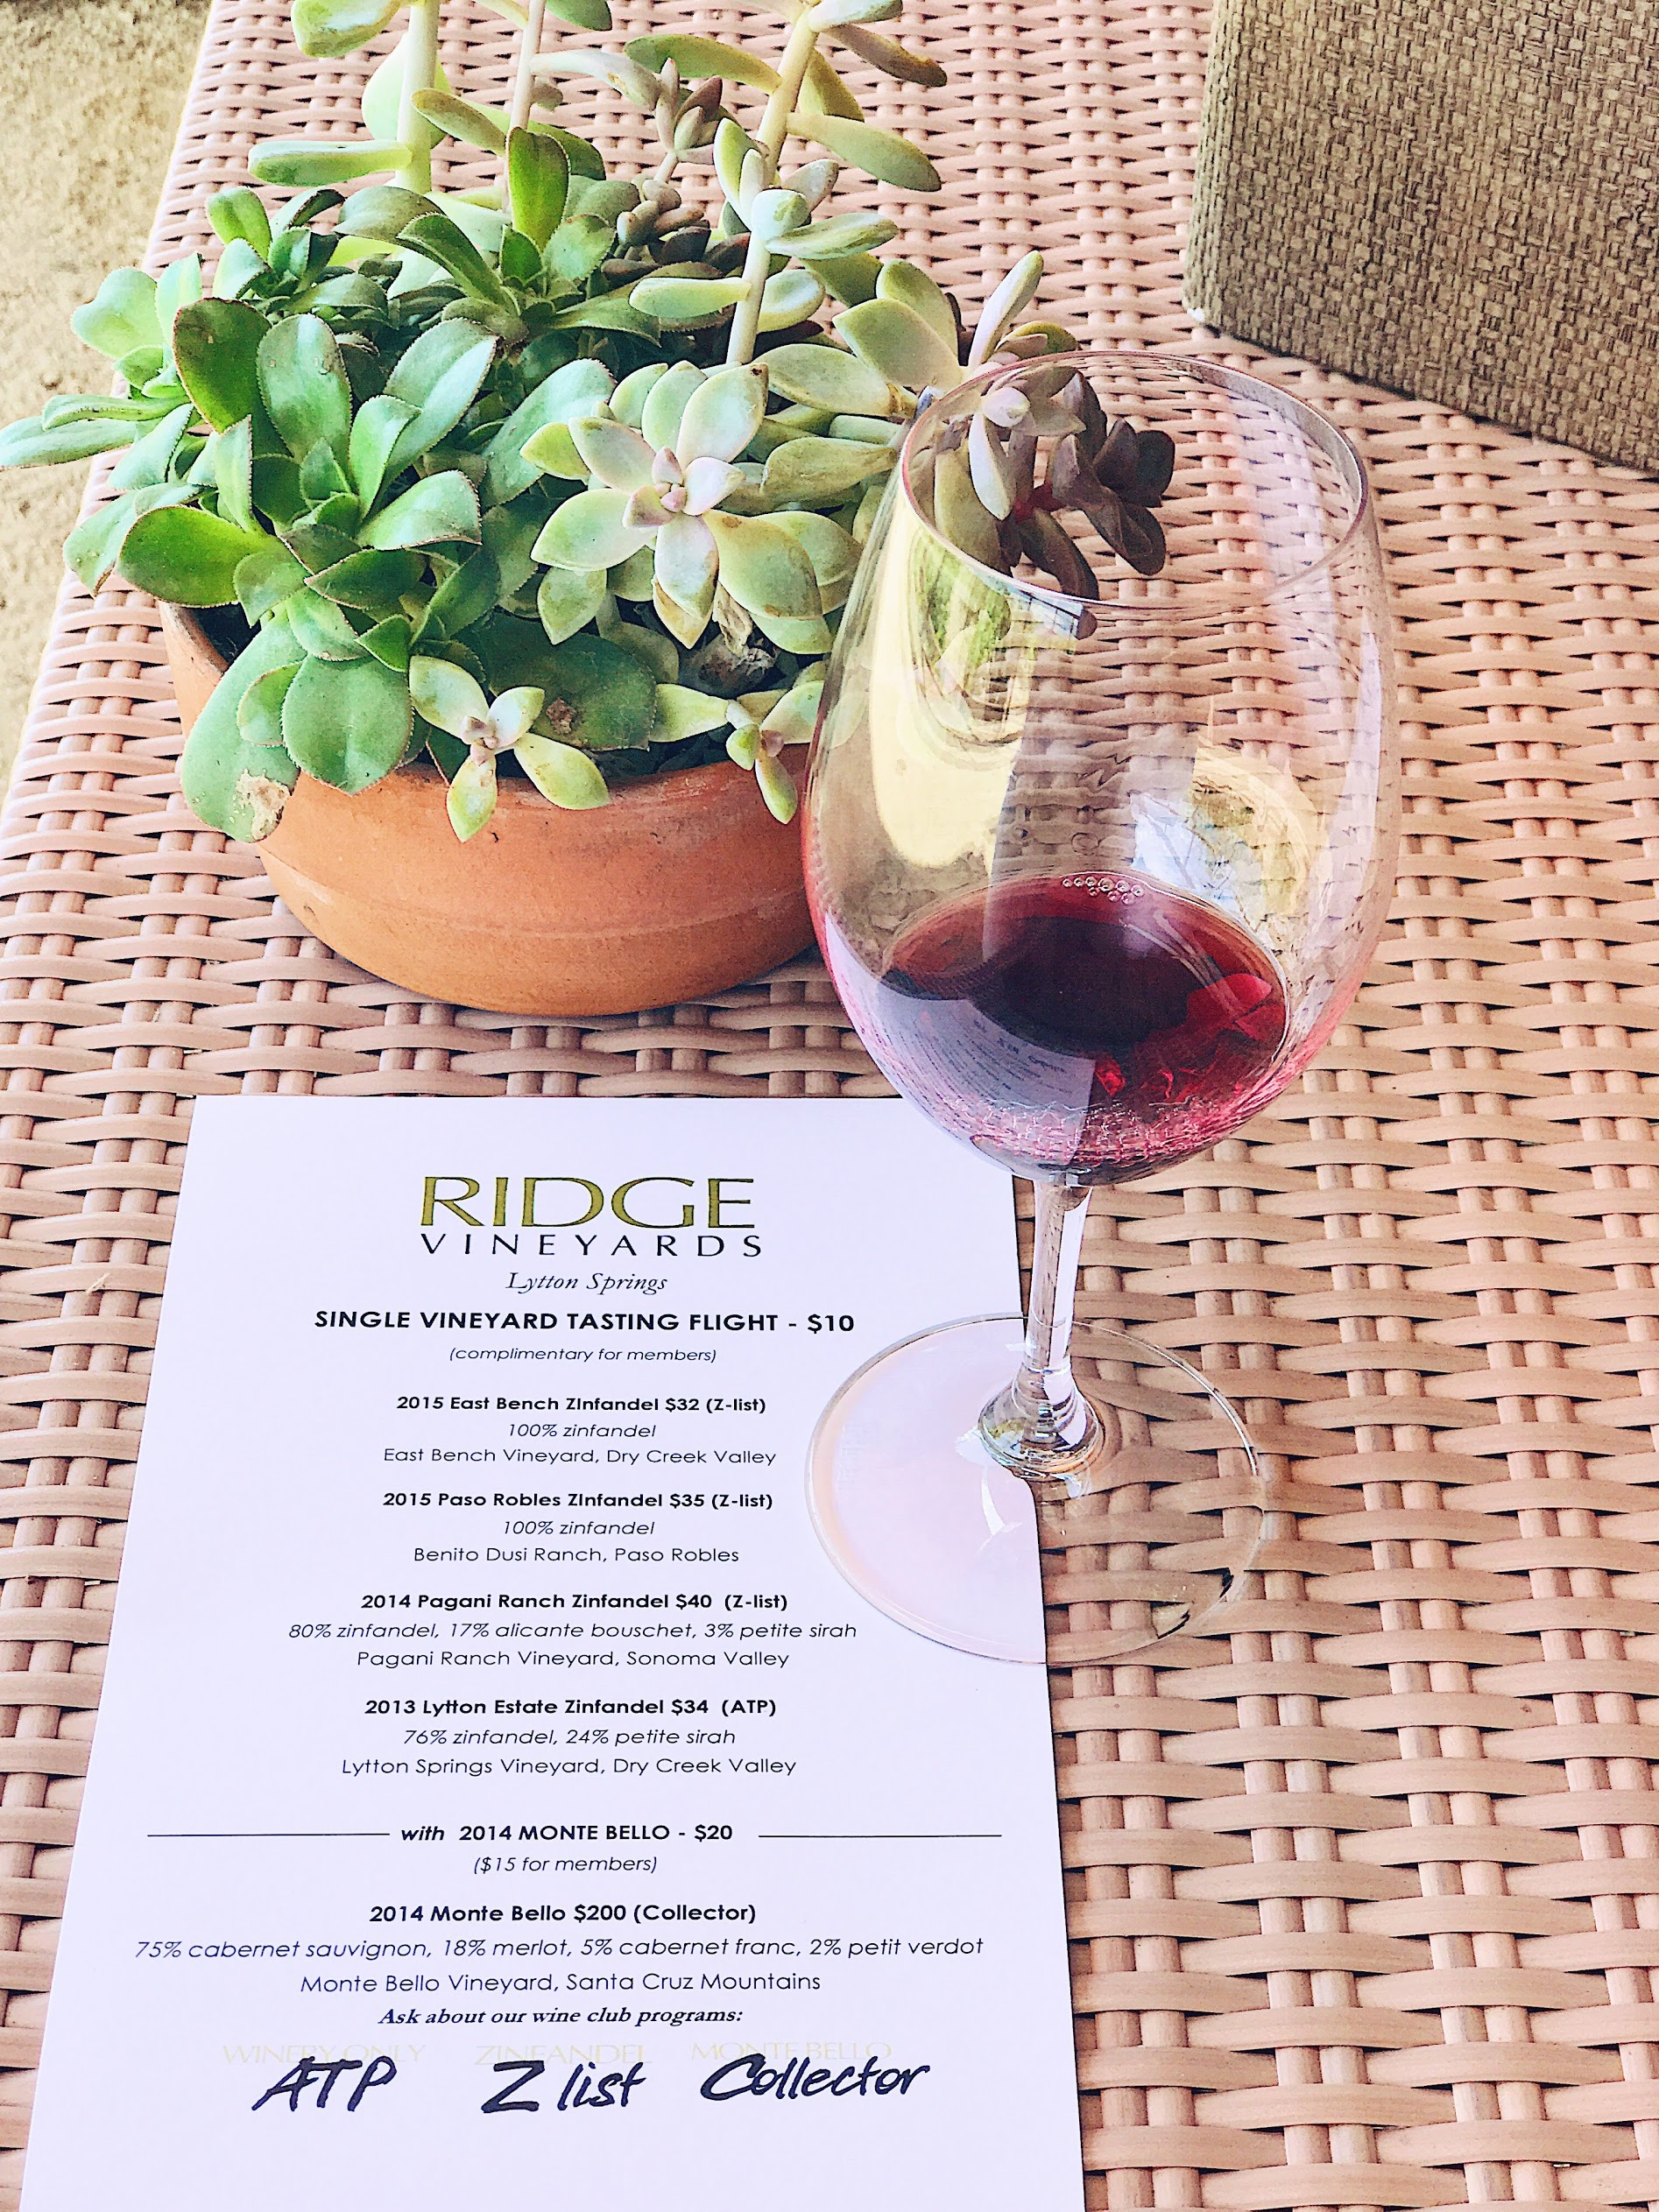 Wine Tasting At Ridge In Healdsburg